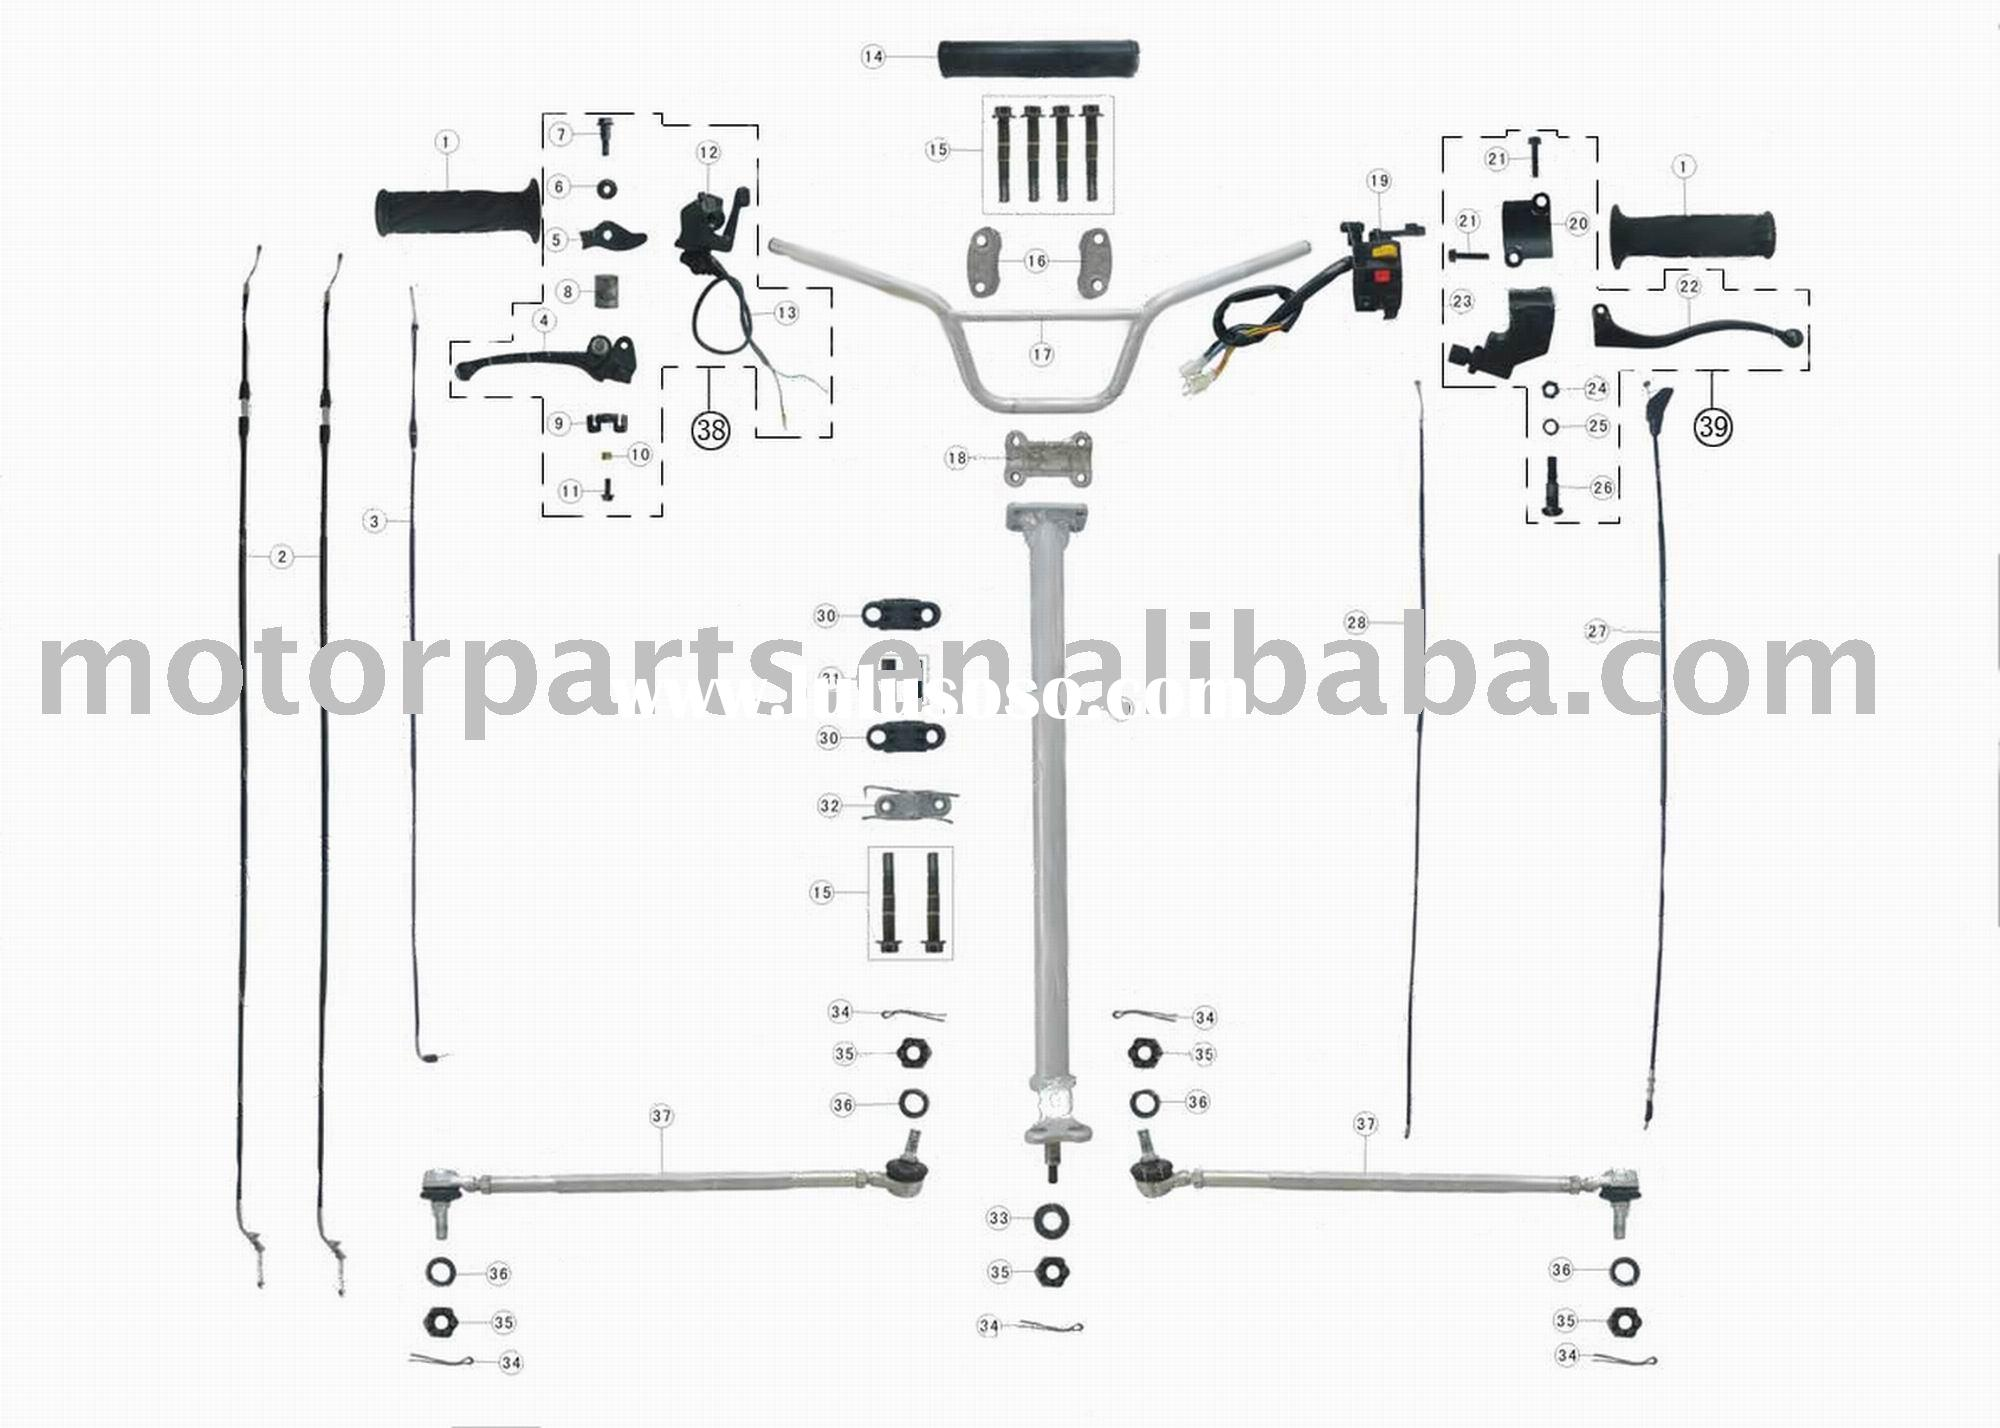 Taotao 200cc Atv Parts besides Taotao 50cc Scooter Fuse Box Location in addition Loncin 250 Atv Wiring Diagram 6 Wire moreover Moottorit in addition Vacuum Fuel Pump For Atv. on 50cc atv wiring diagram